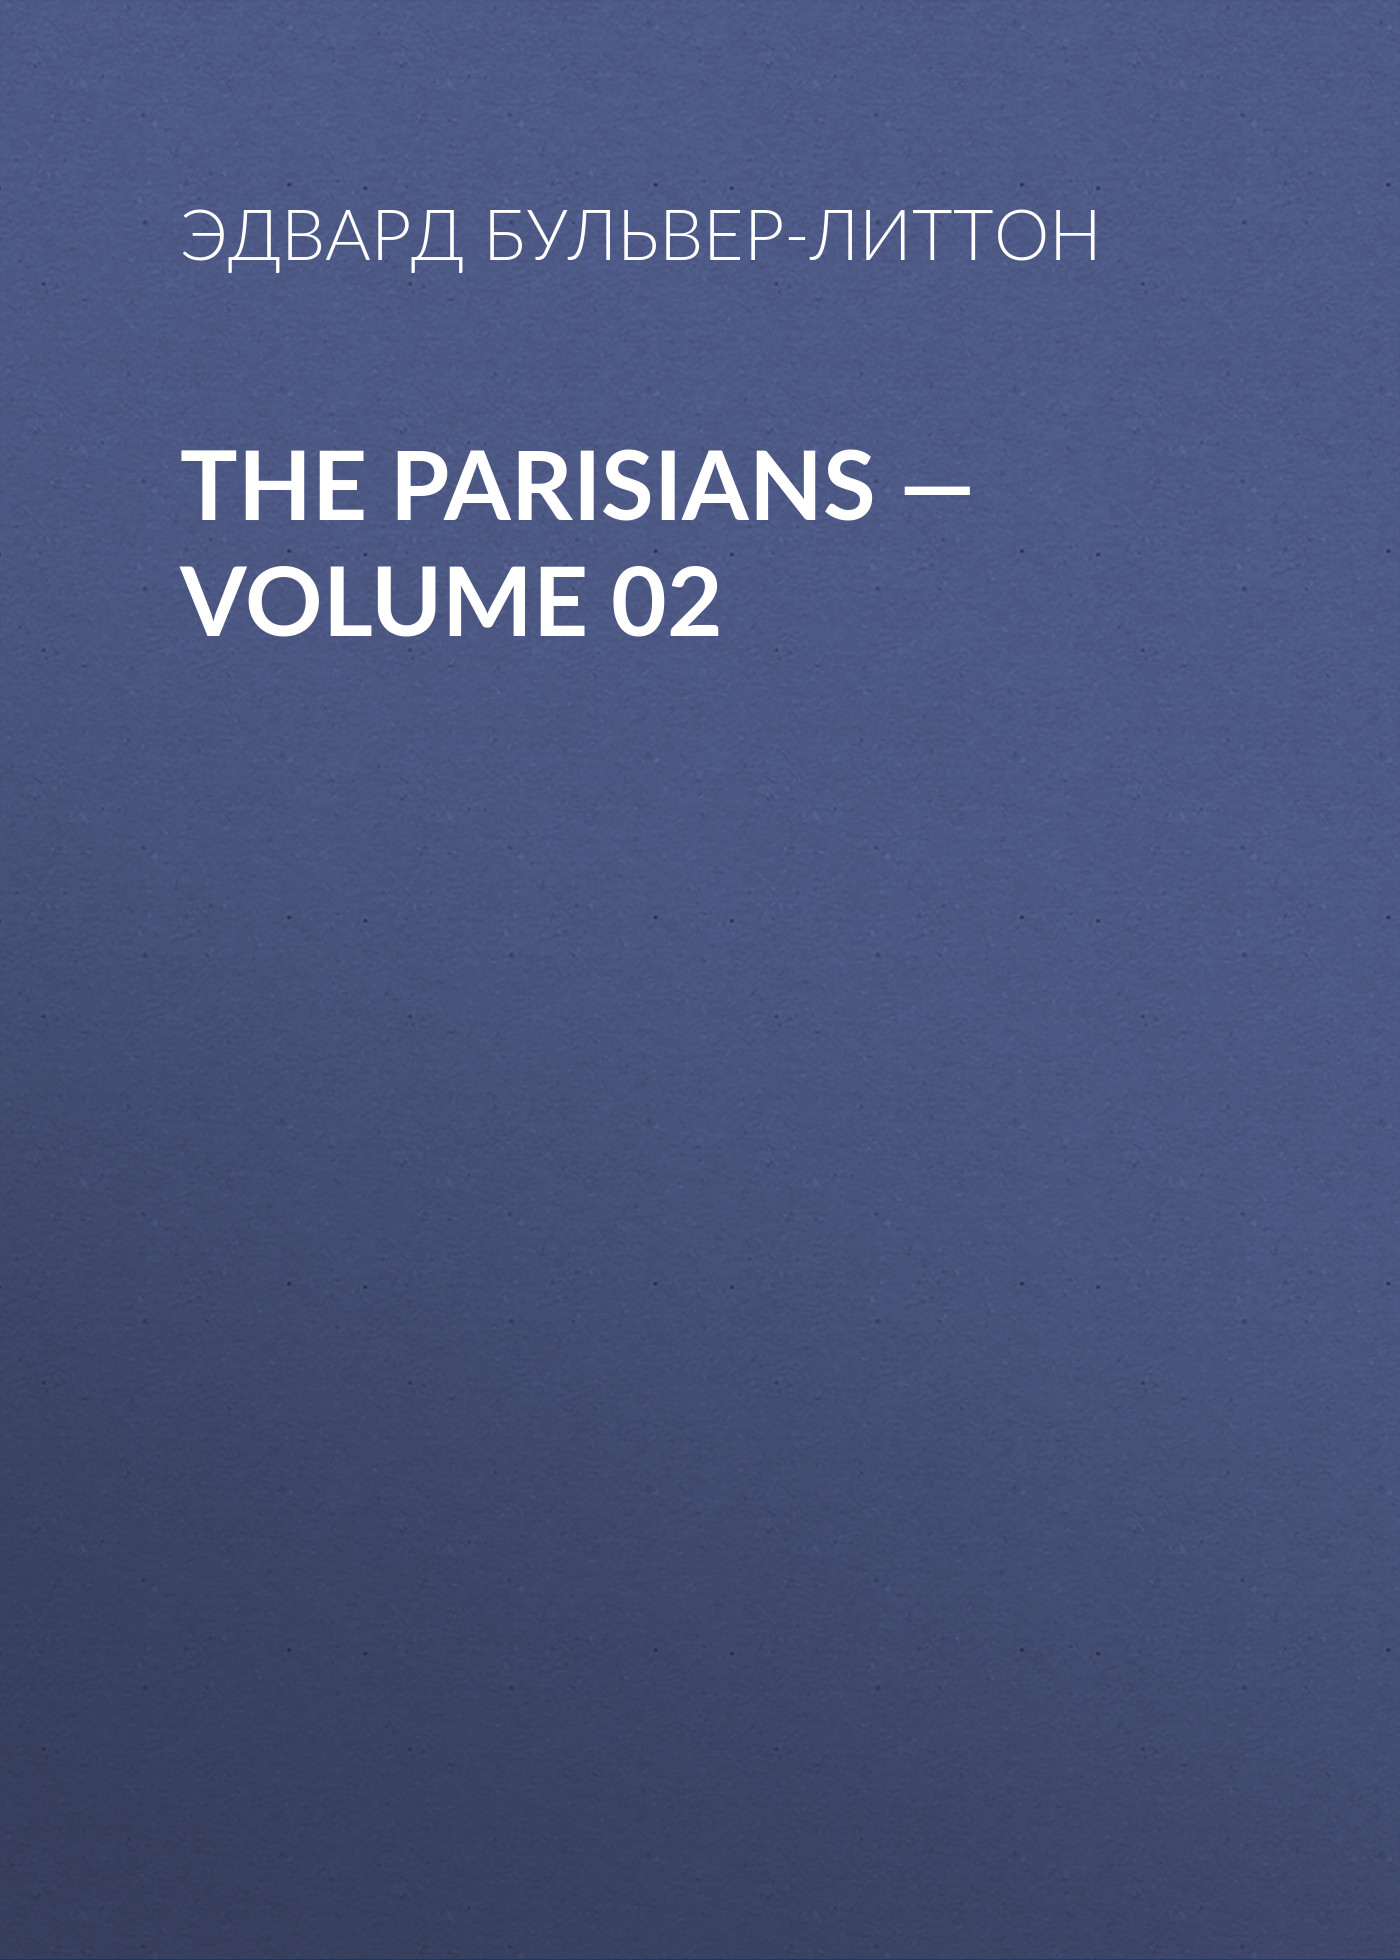 The Parisians — Volume 02